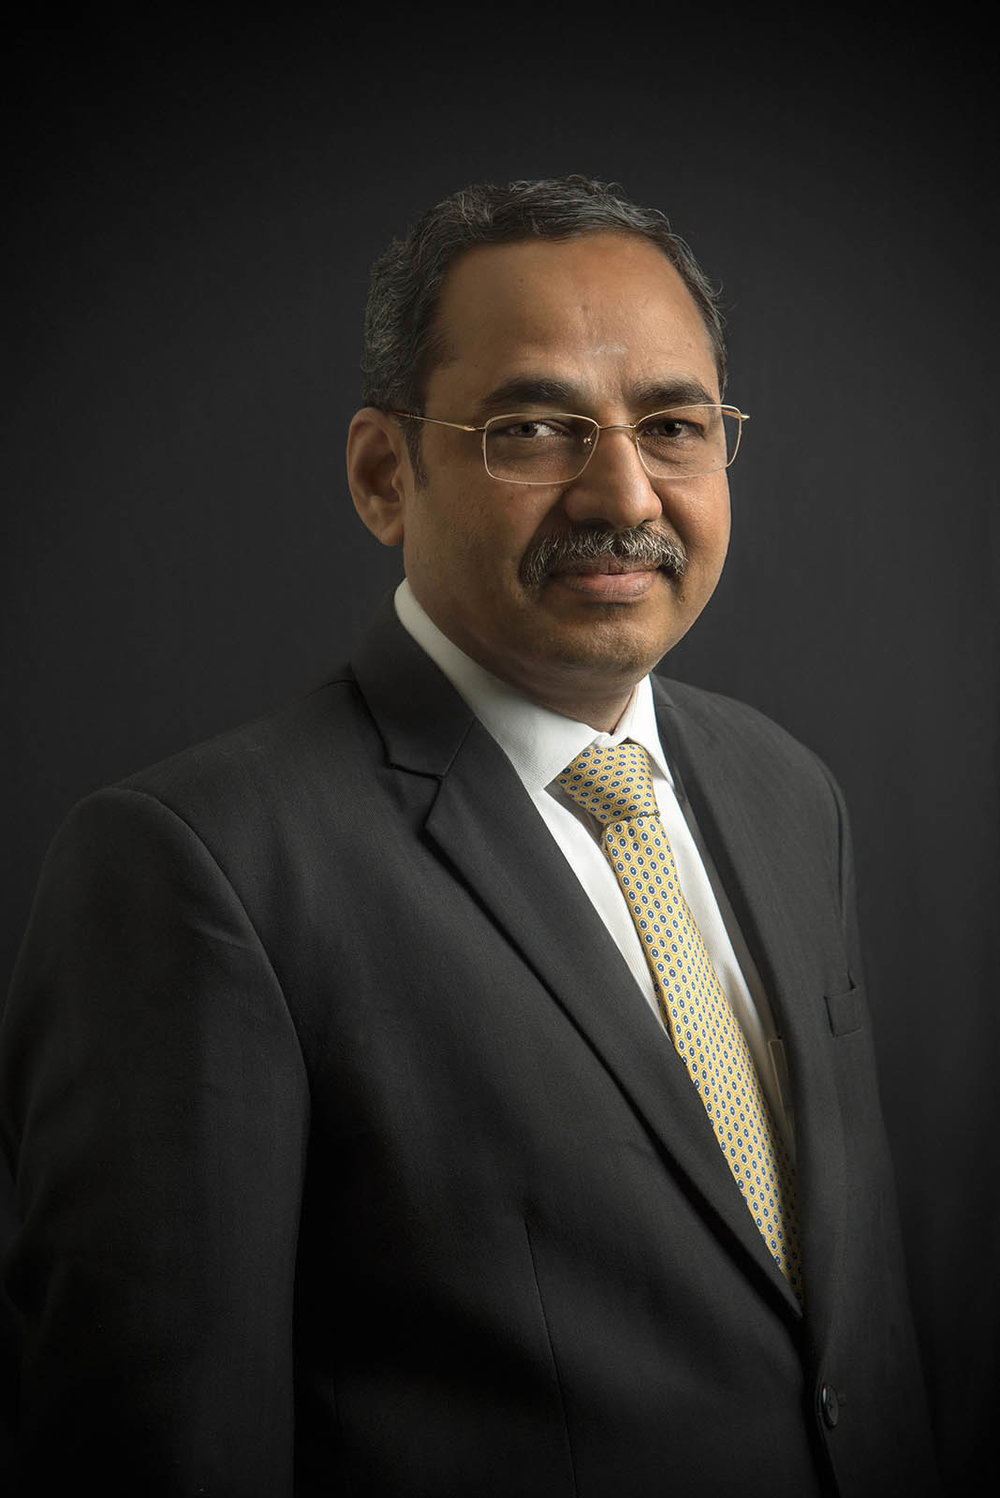 Mr. A Balasubramaniam, CEO, Aditya Birla Sun Life AMC Ltd.